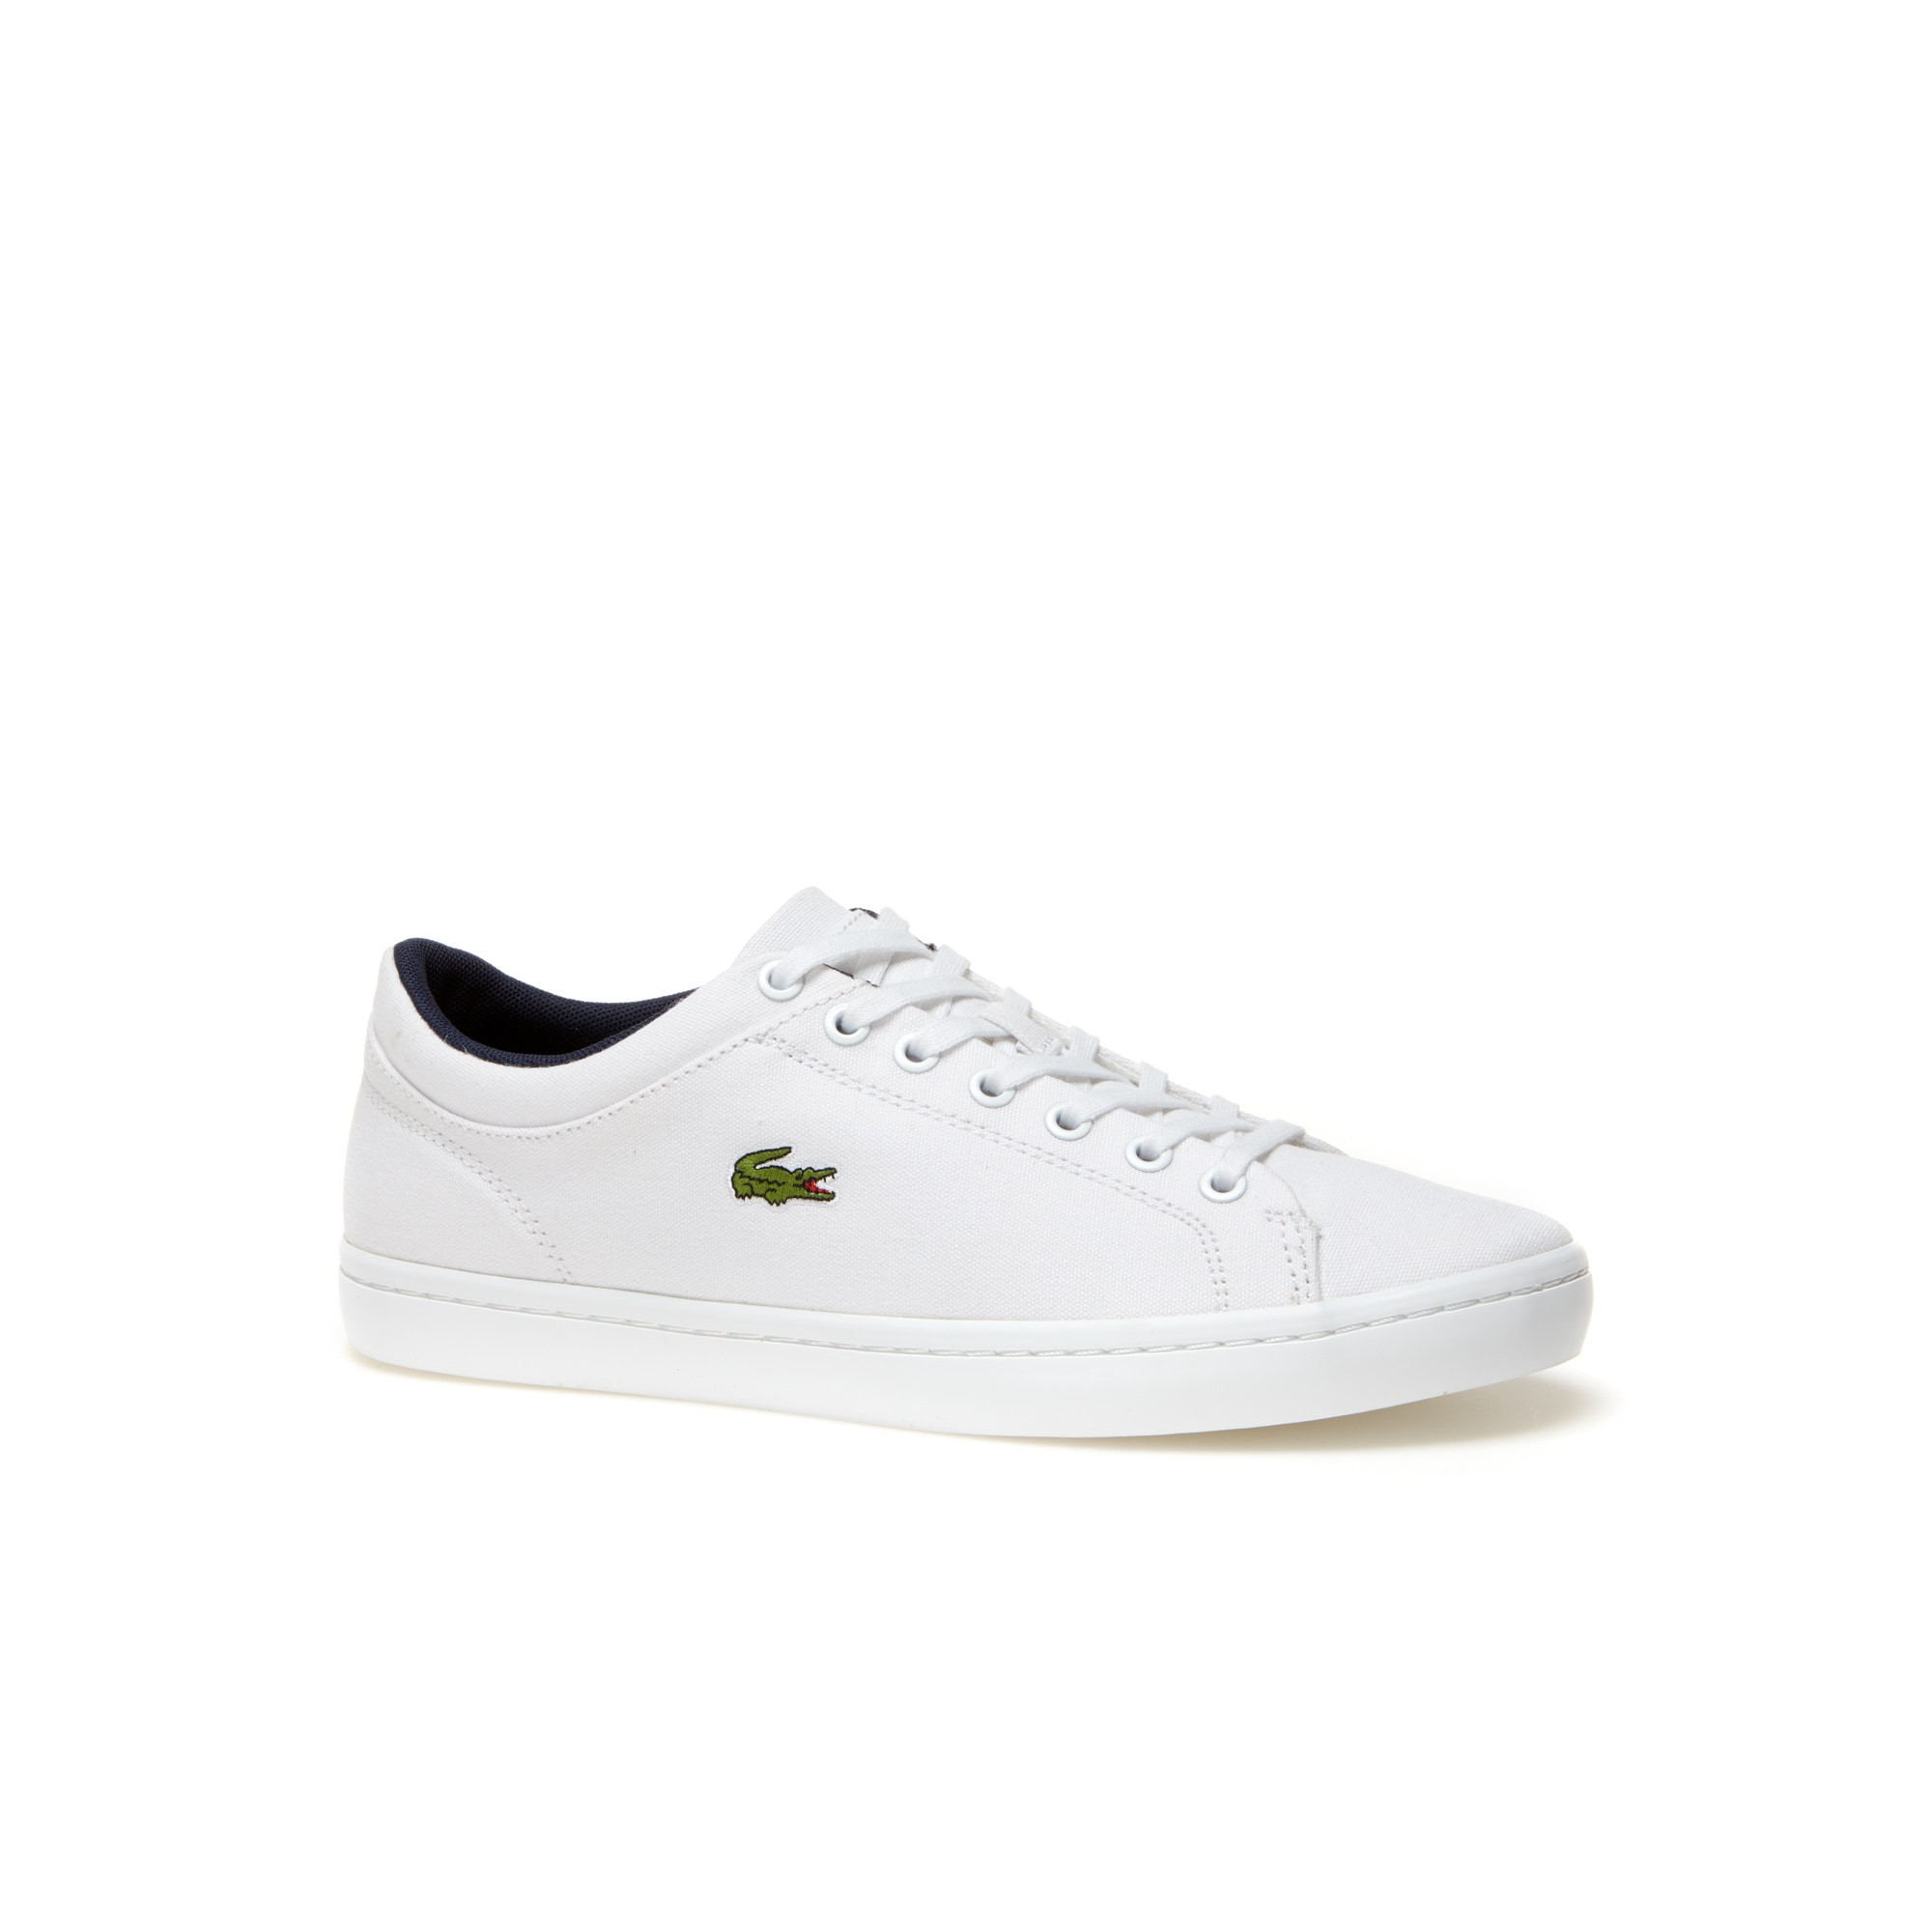 Men's Straightset Canvas Sneakers